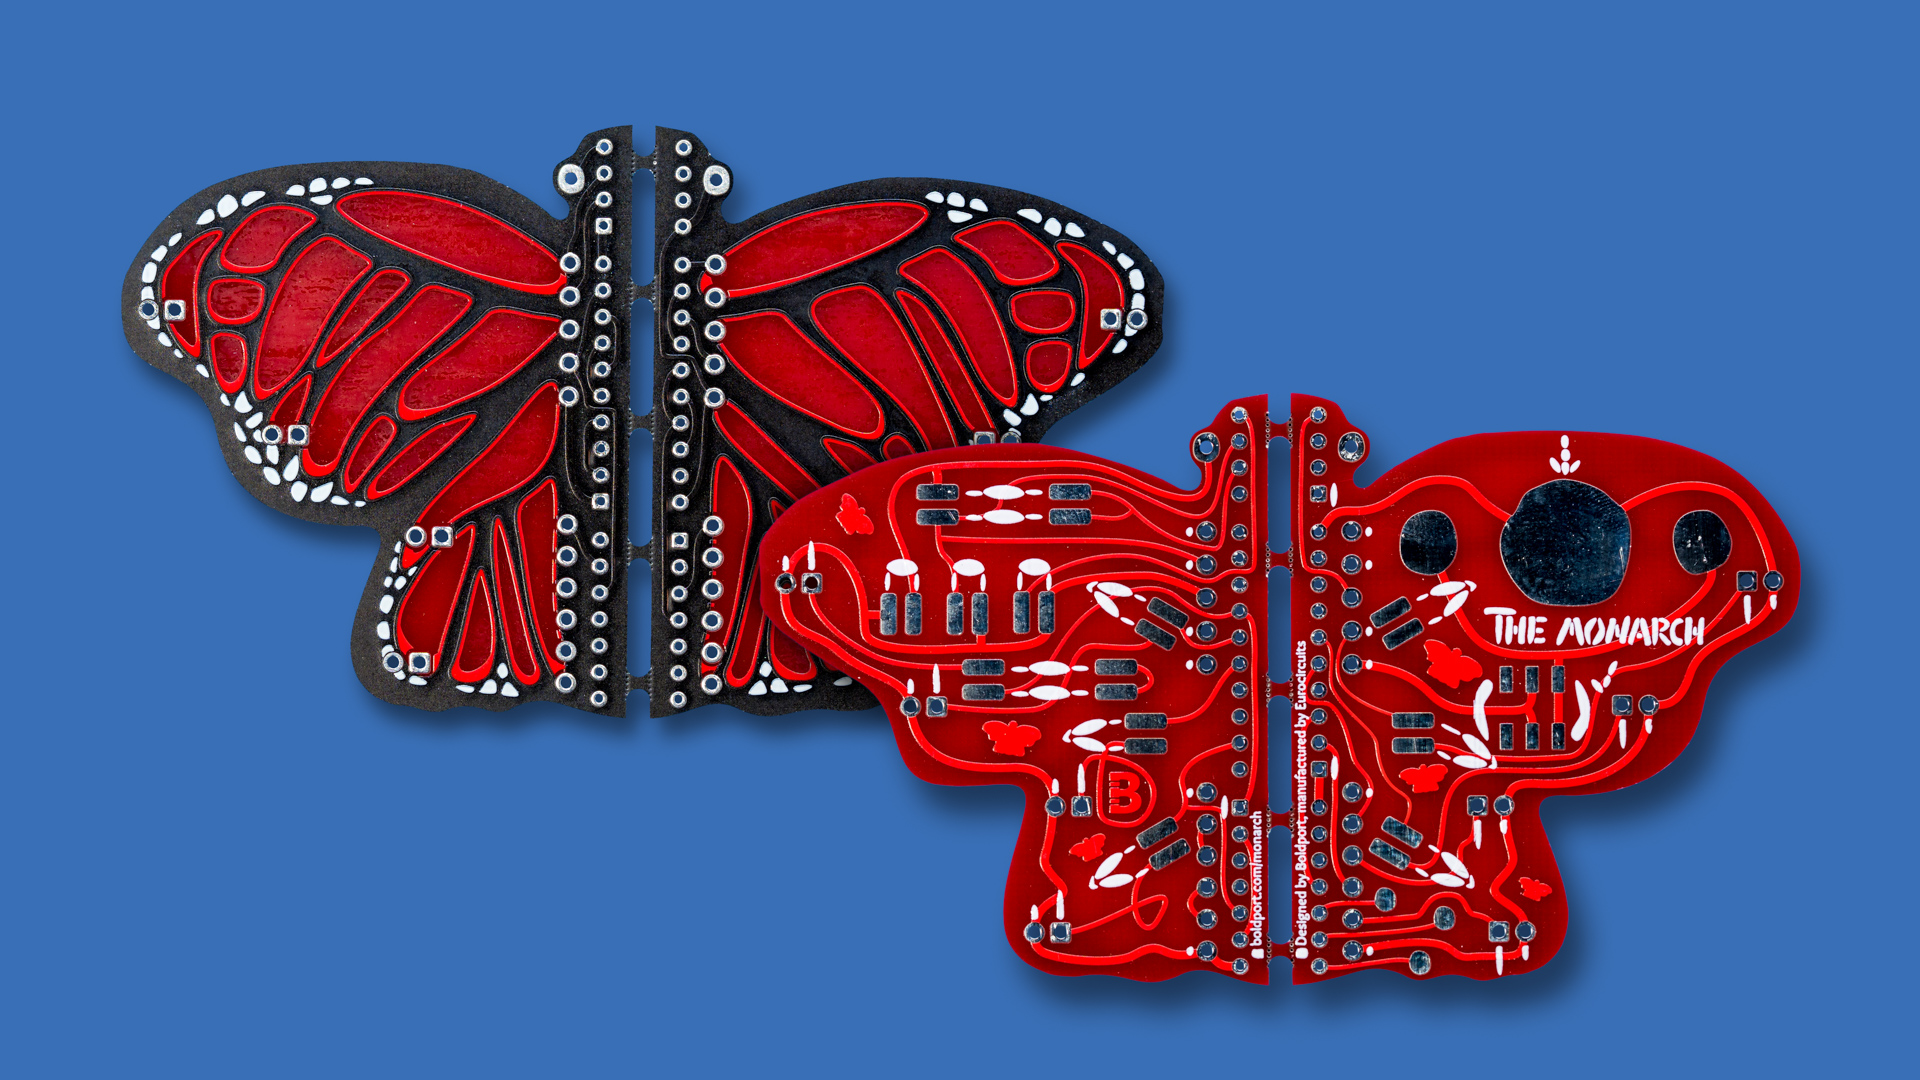 Our most recent collaboration, The Monarch where we use two soldermask colours (black and red) and a unique physical construction.